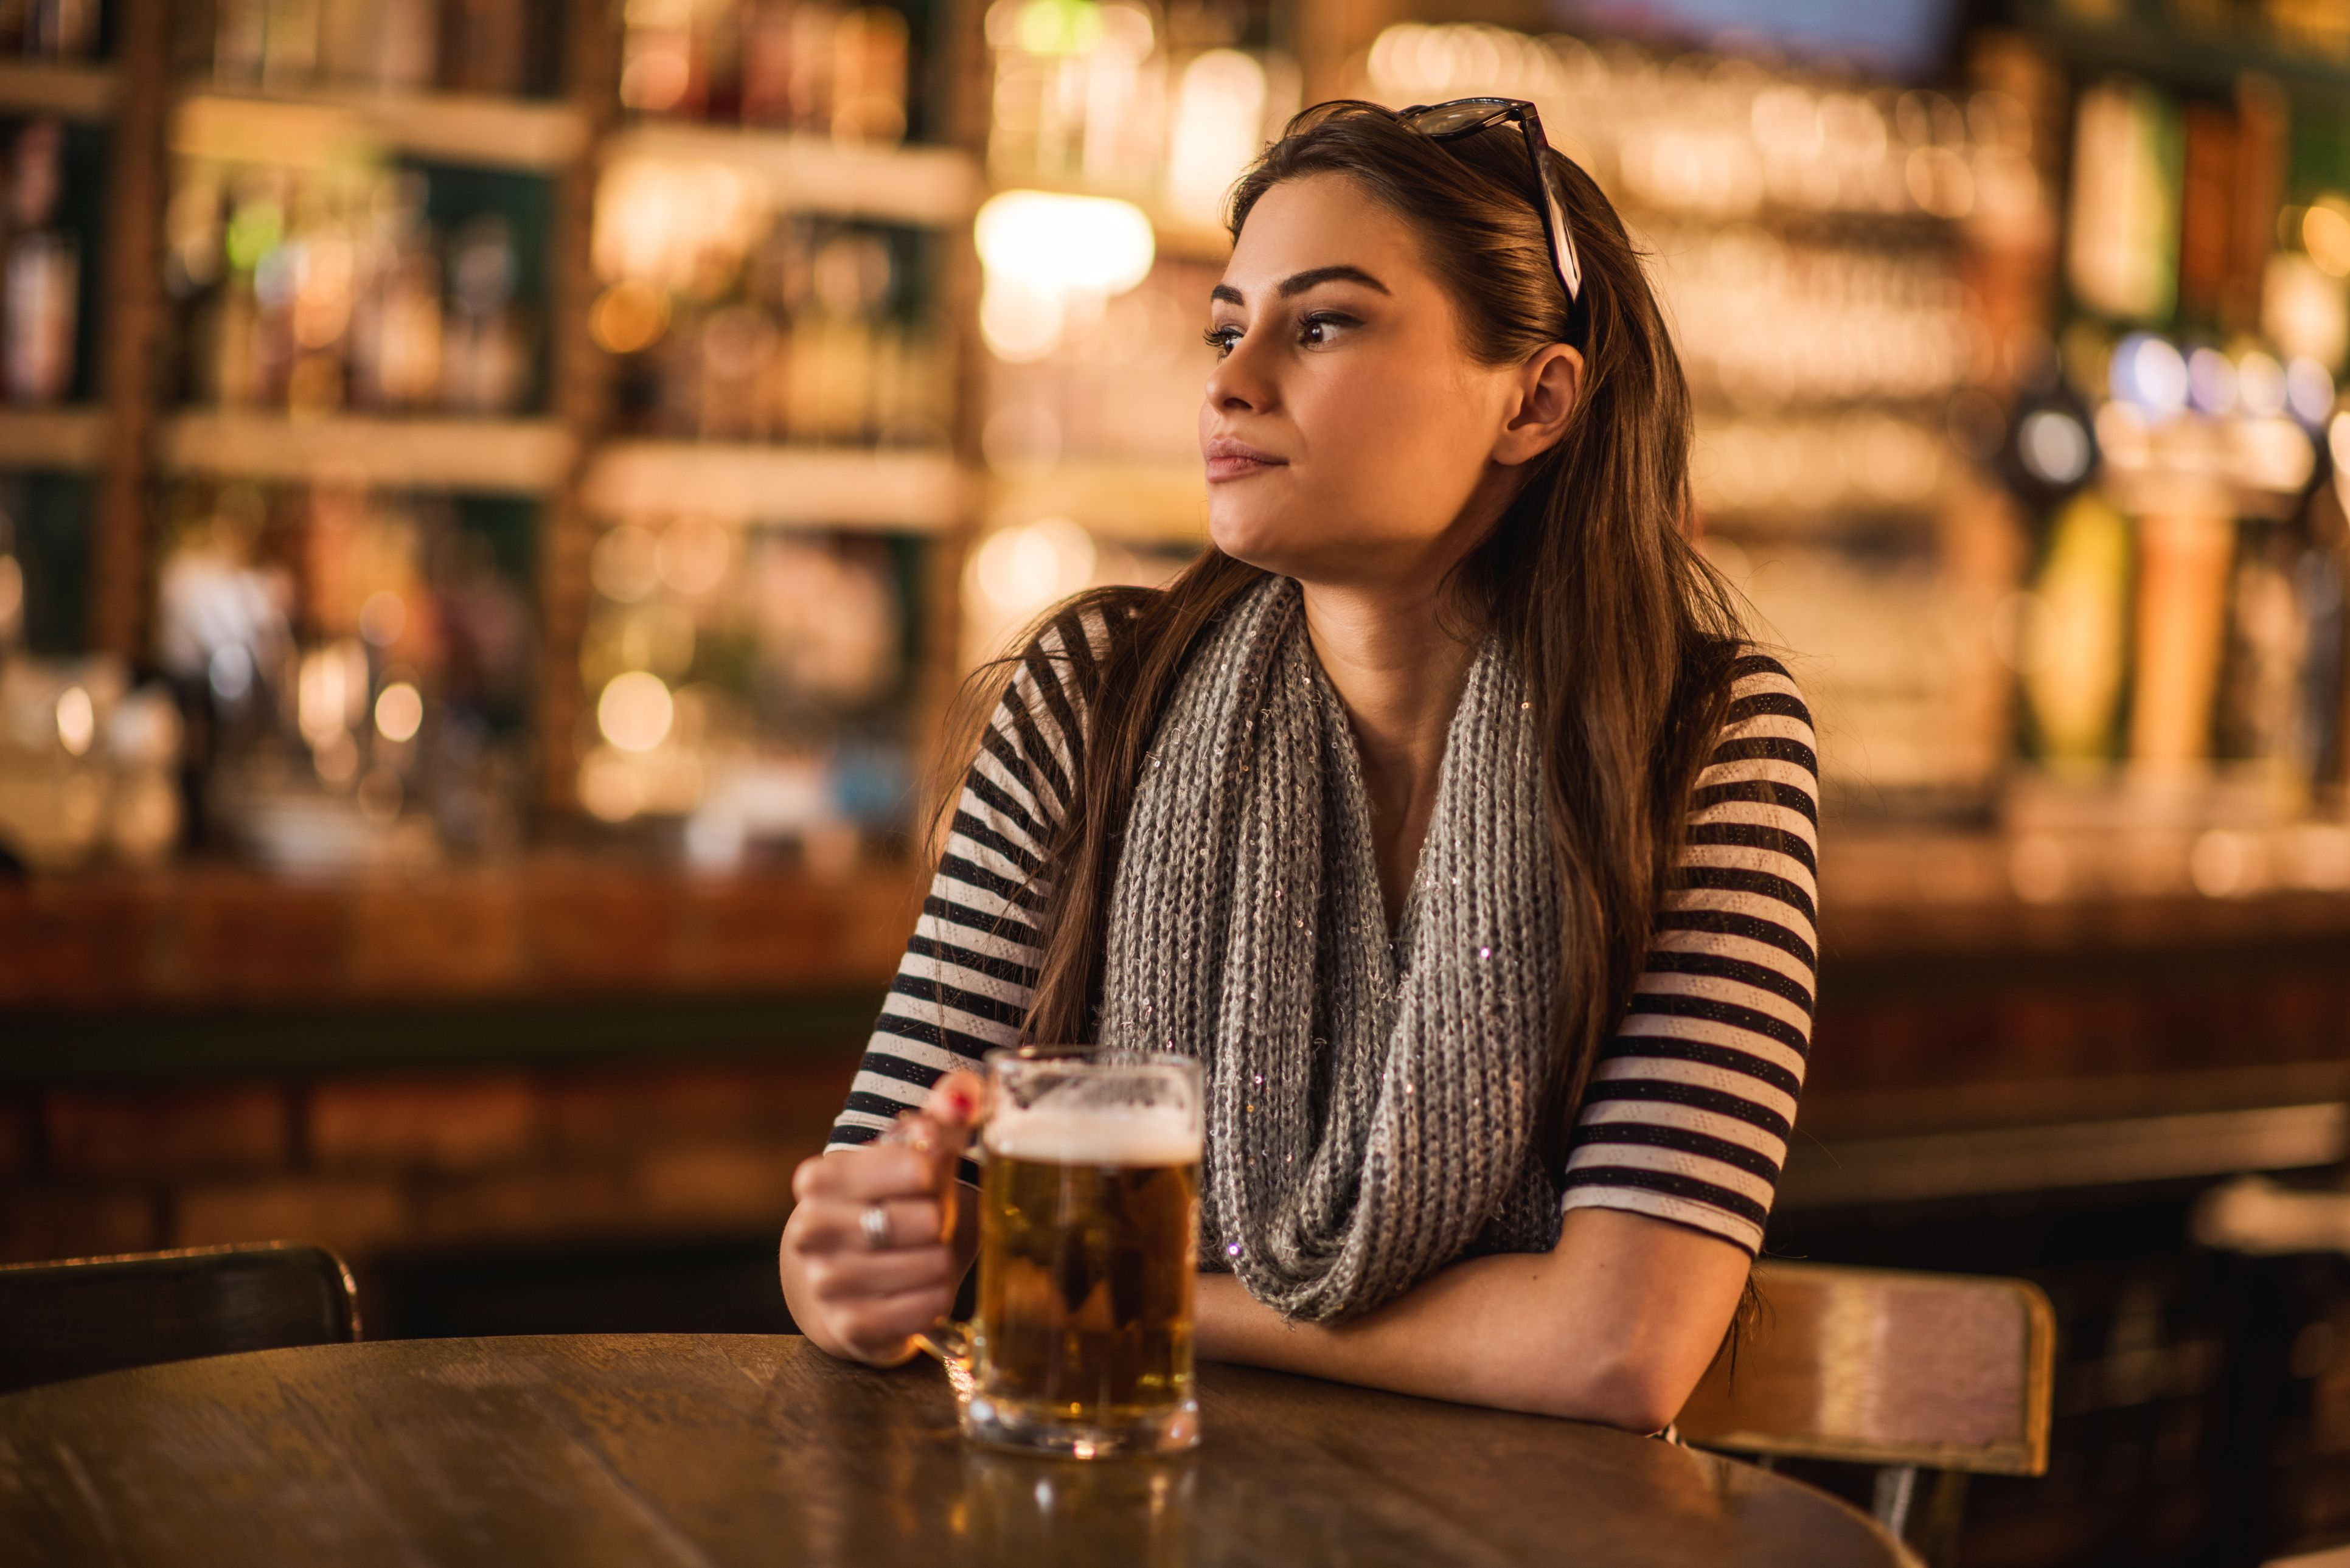 risks of using alcohol to relieve anxiety